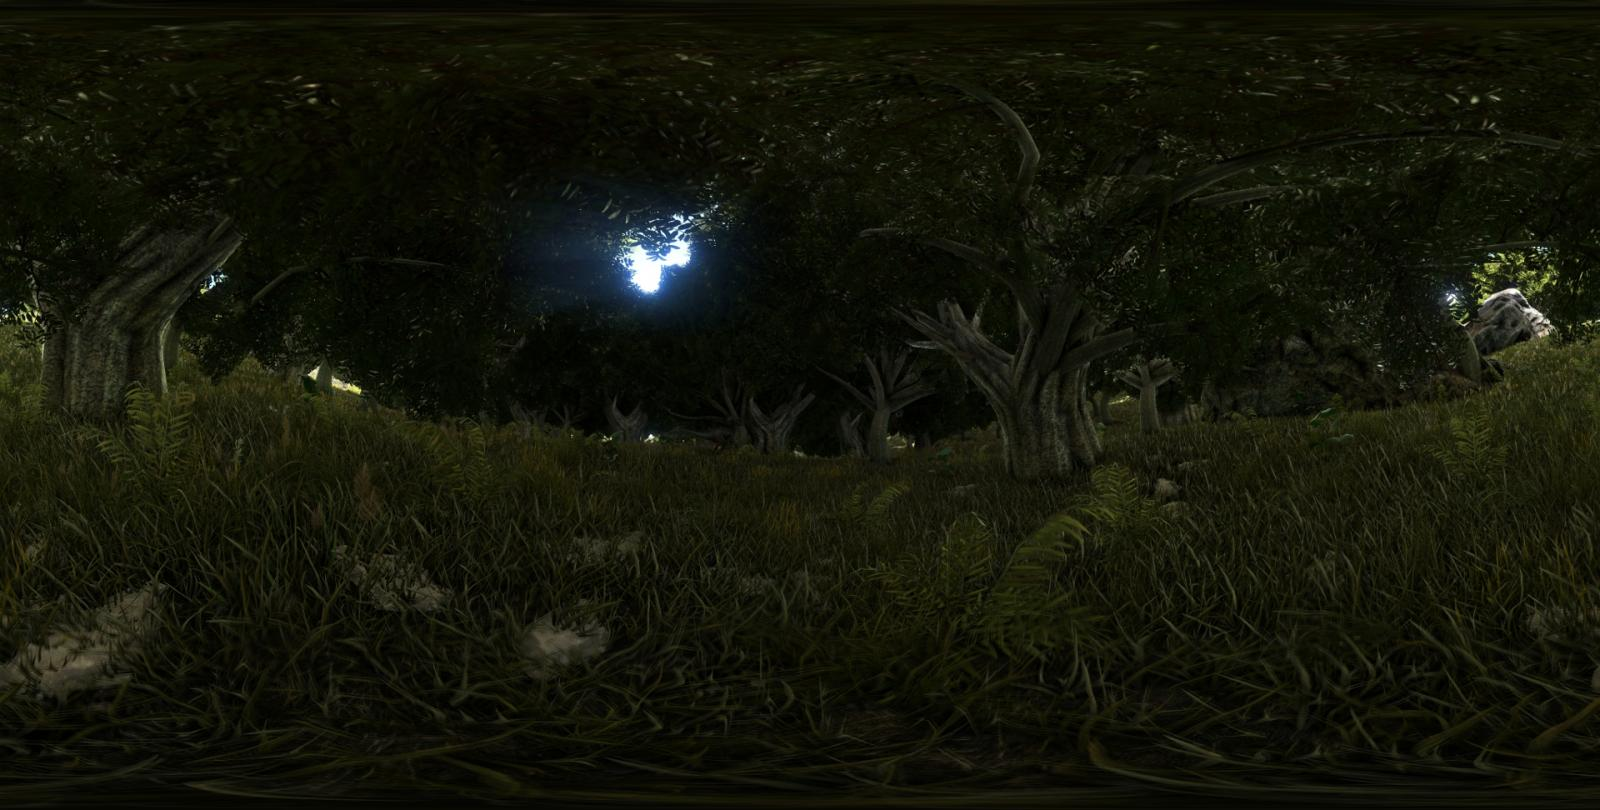 large.59218e4aaf797_FataL1ty-DarkForest-Panoramic360Stereoscopic3Dsta.jpg